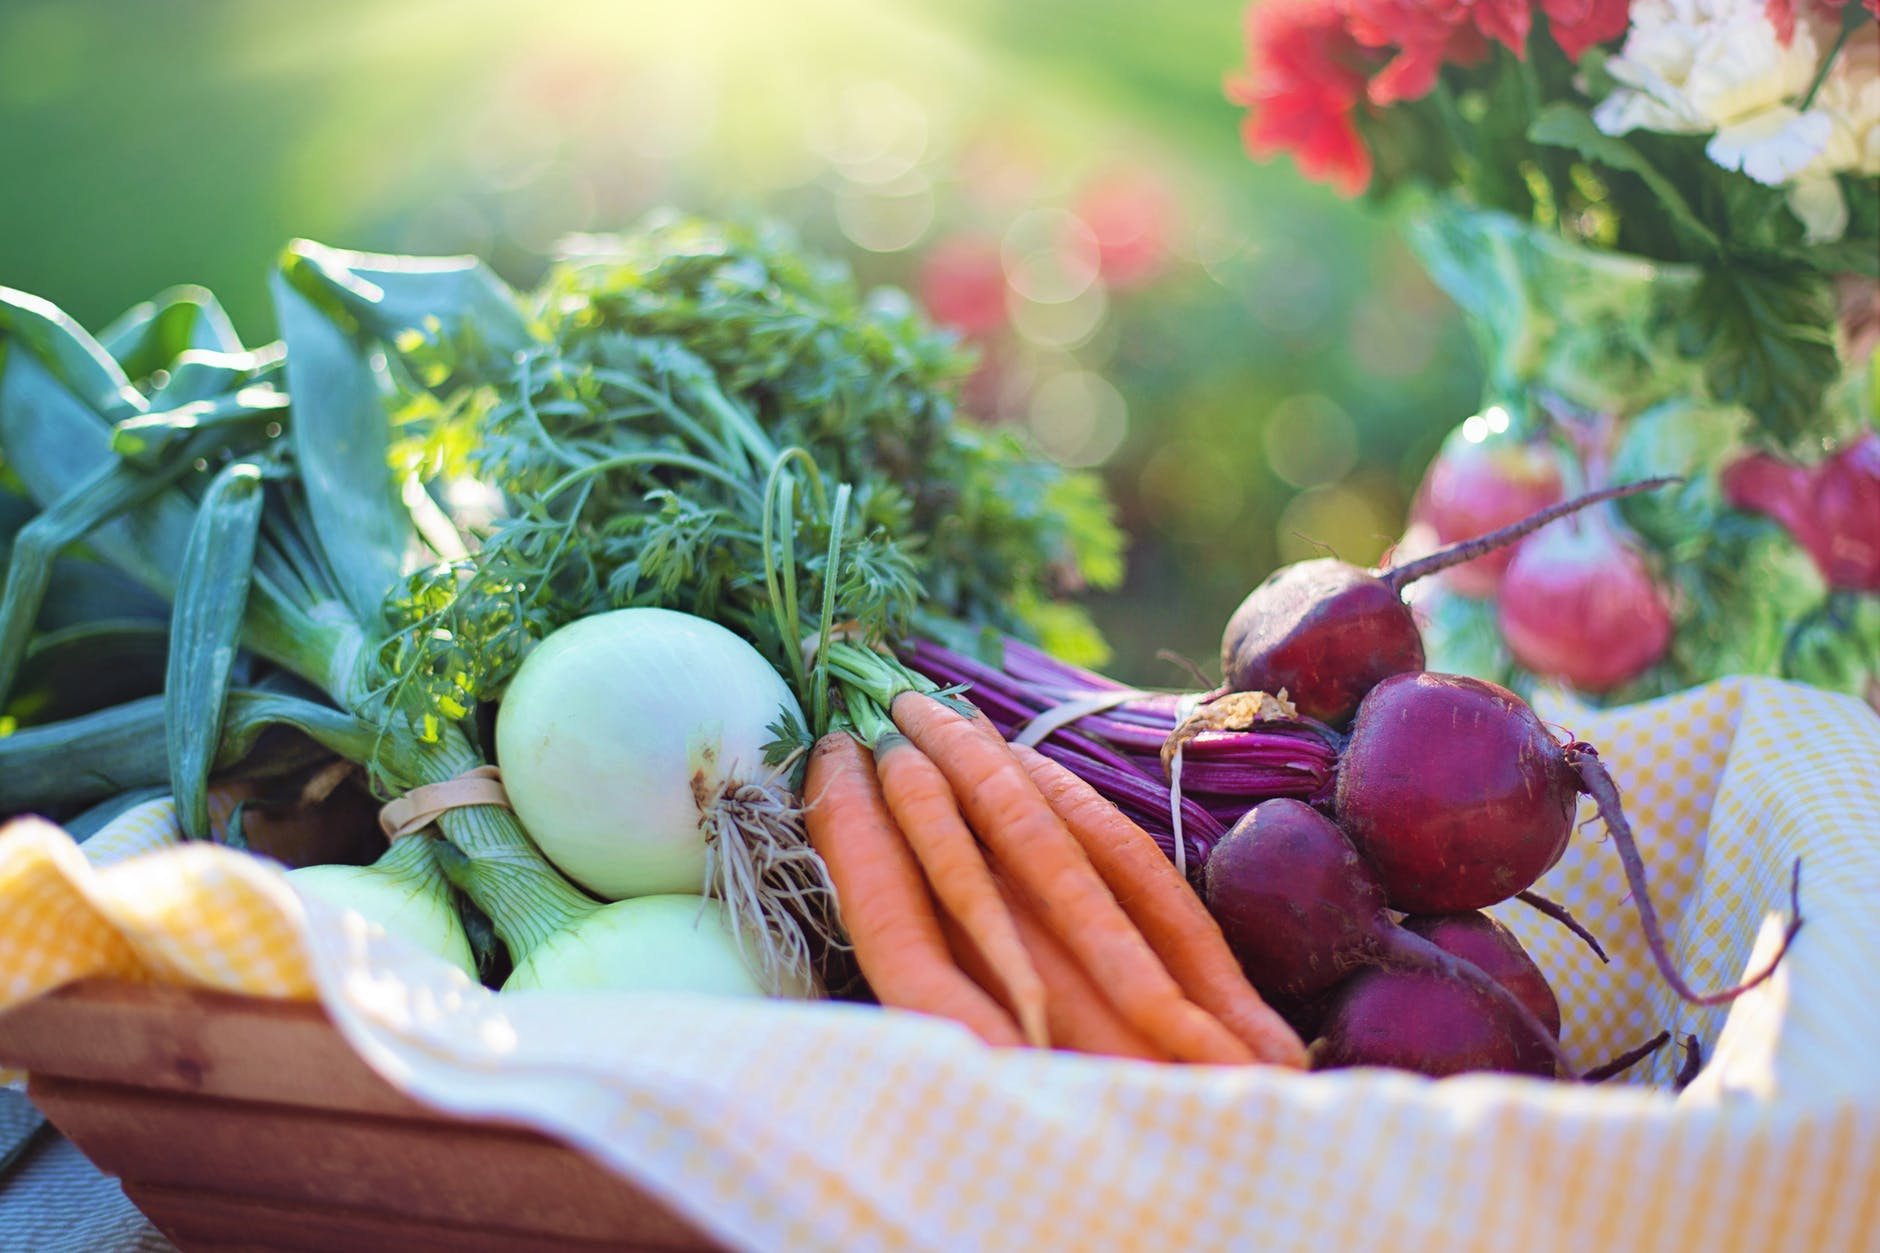 a basket of fresh vegetable for nutrition day - Top Child Care Marketing Tips Using Food